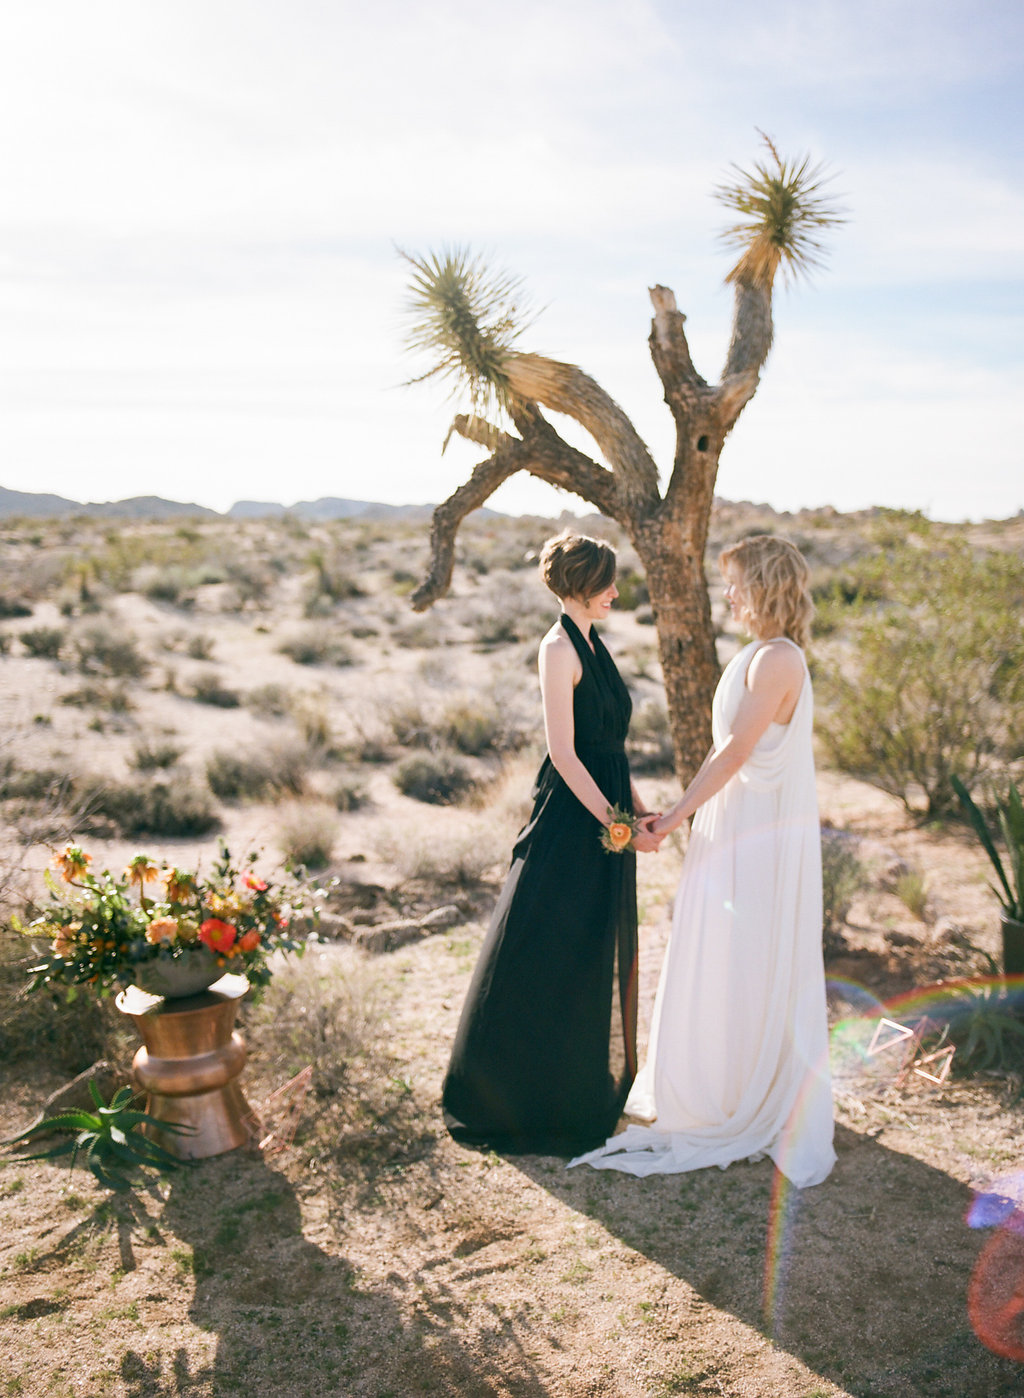 Jessica schilling wedding photography couple clasping hands in front of tree